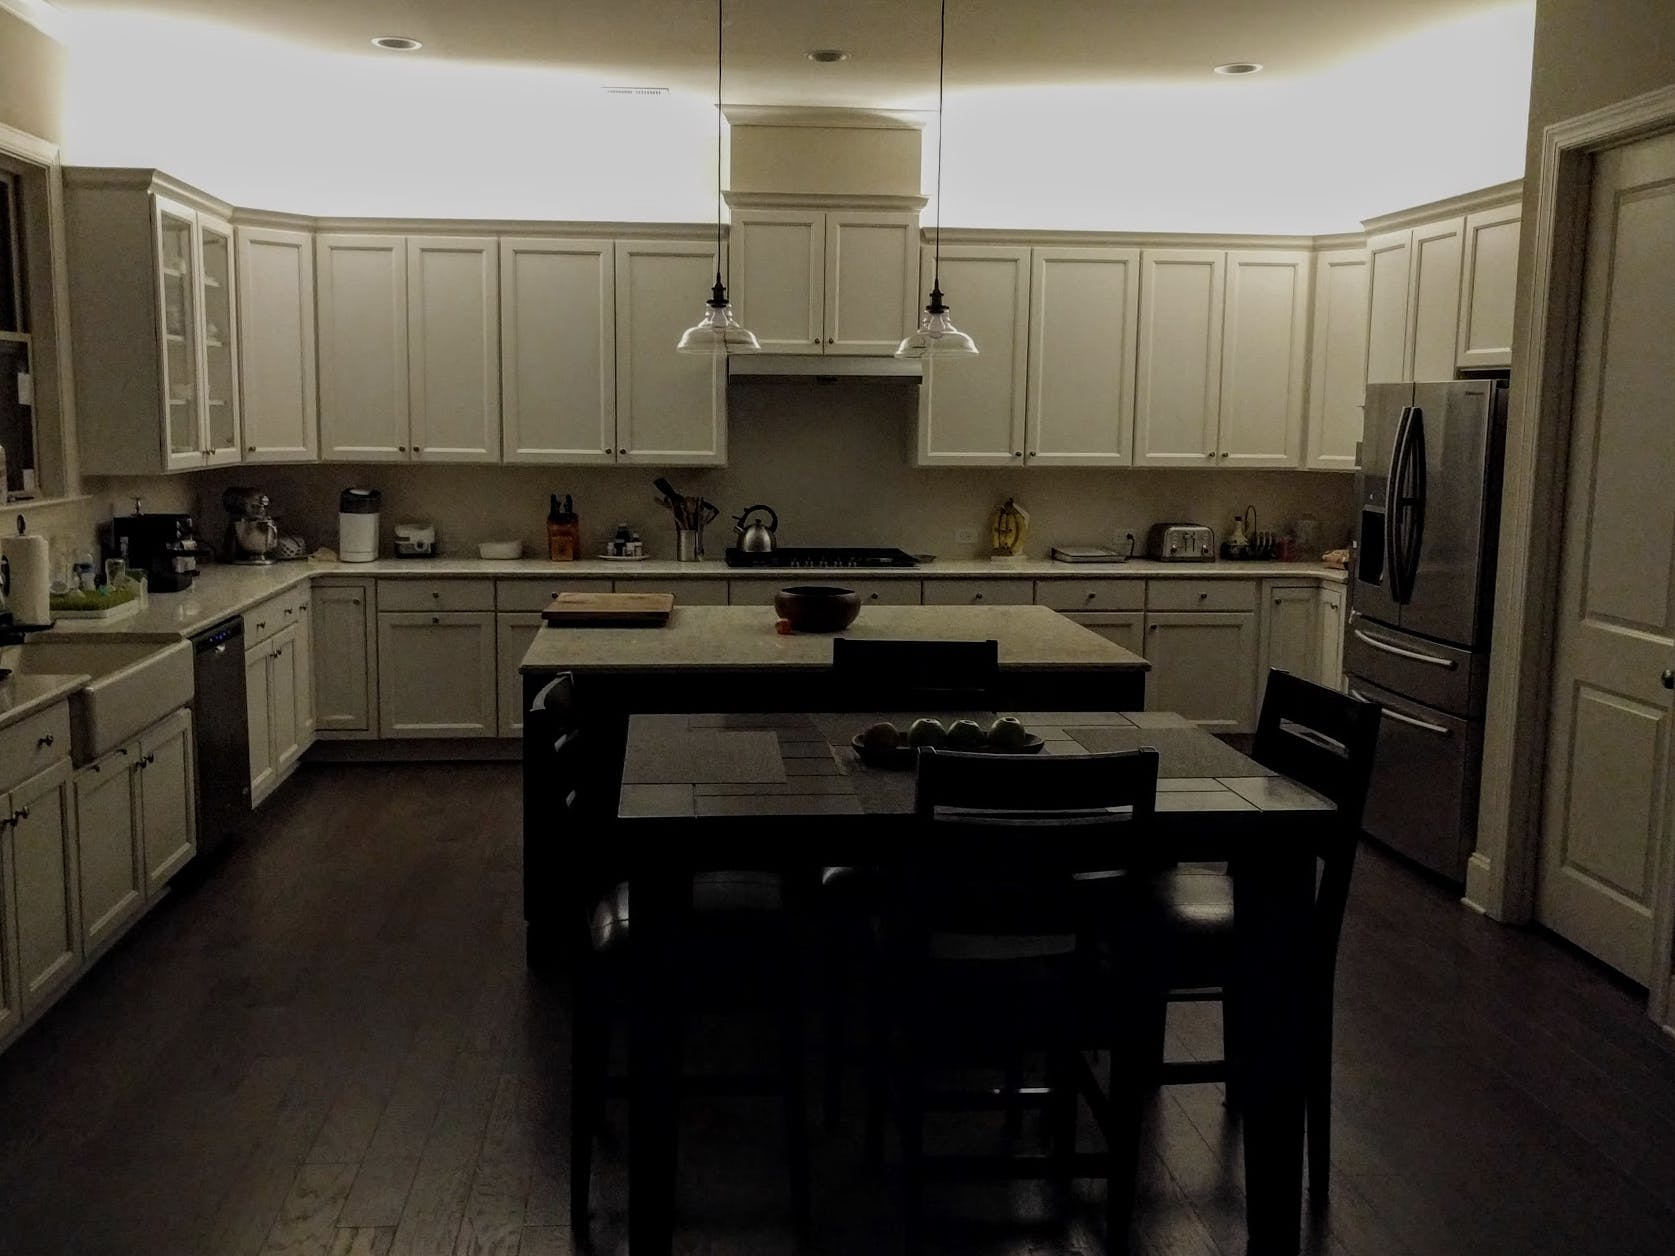 kitchen ambient lighting. Voice Controlled Ambient Lighting With Alexa And Spark Core Kitchen L